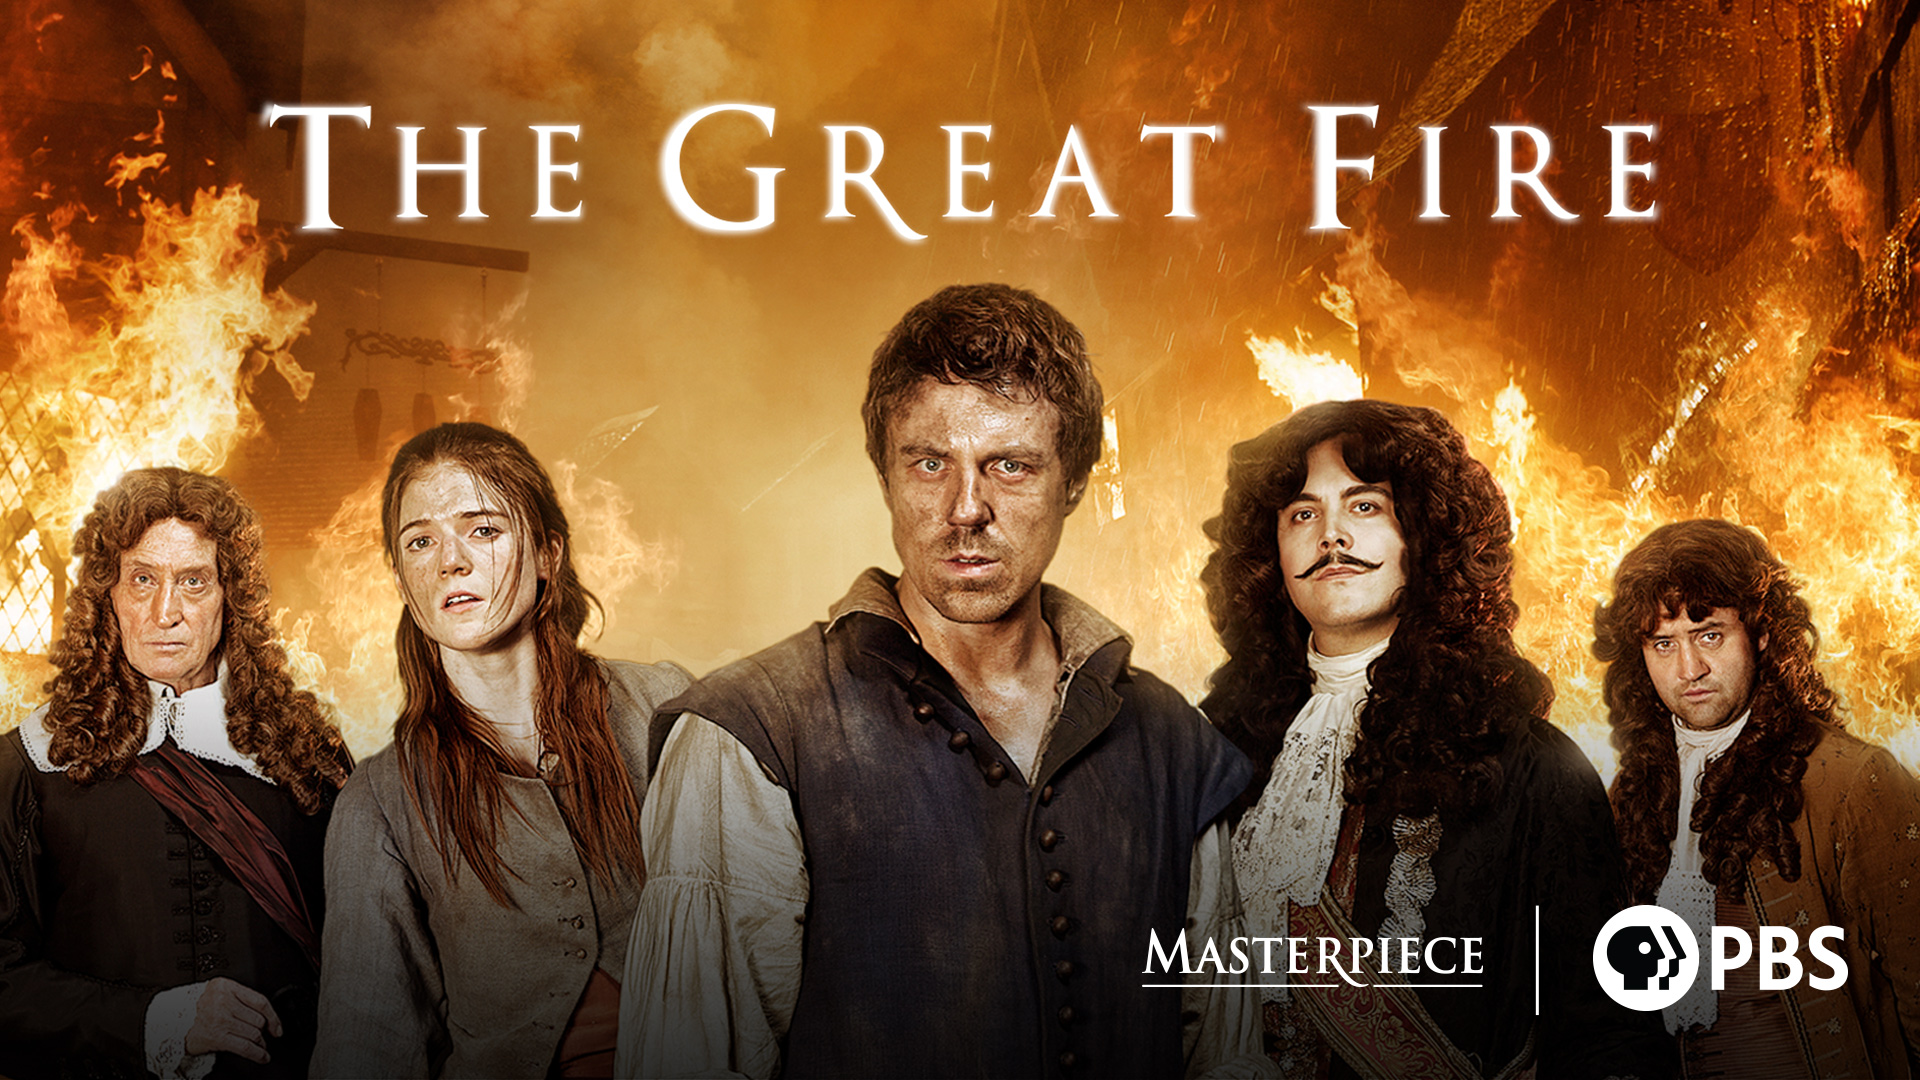 The Great Fire Season 1